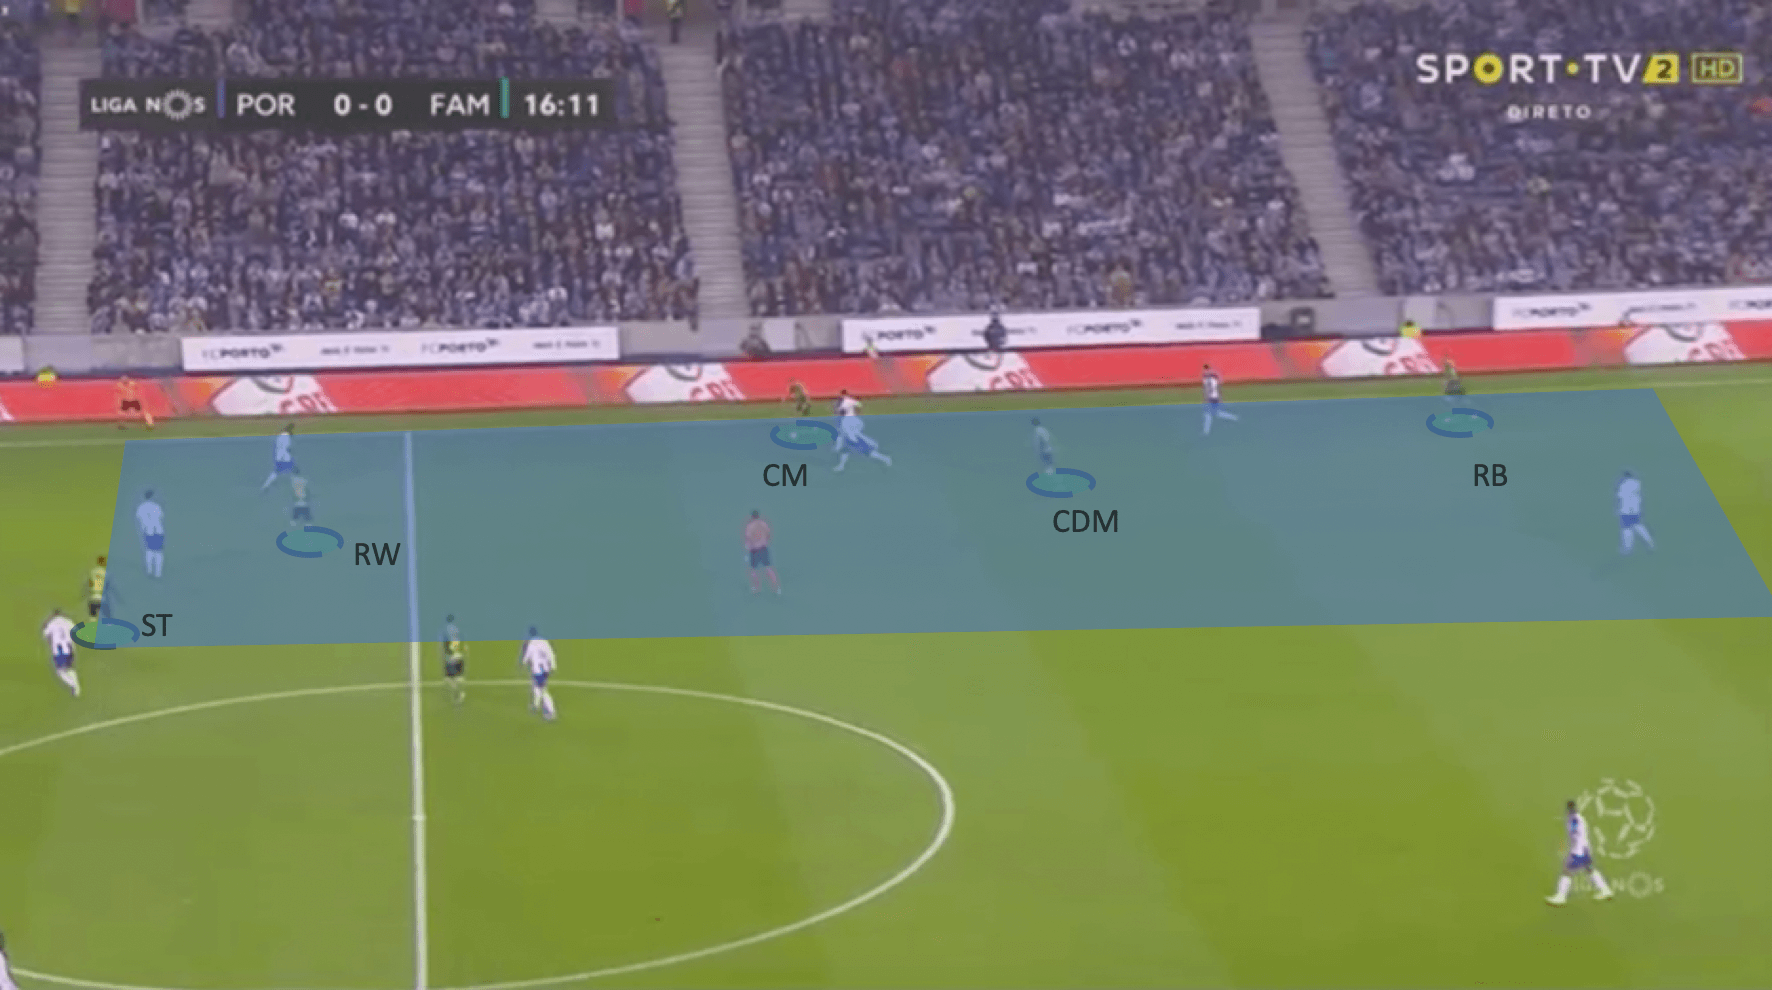 Primeira Liga 2019/20 : F.C. Porto vs F.C. Famalicão - tactical analysis tactics